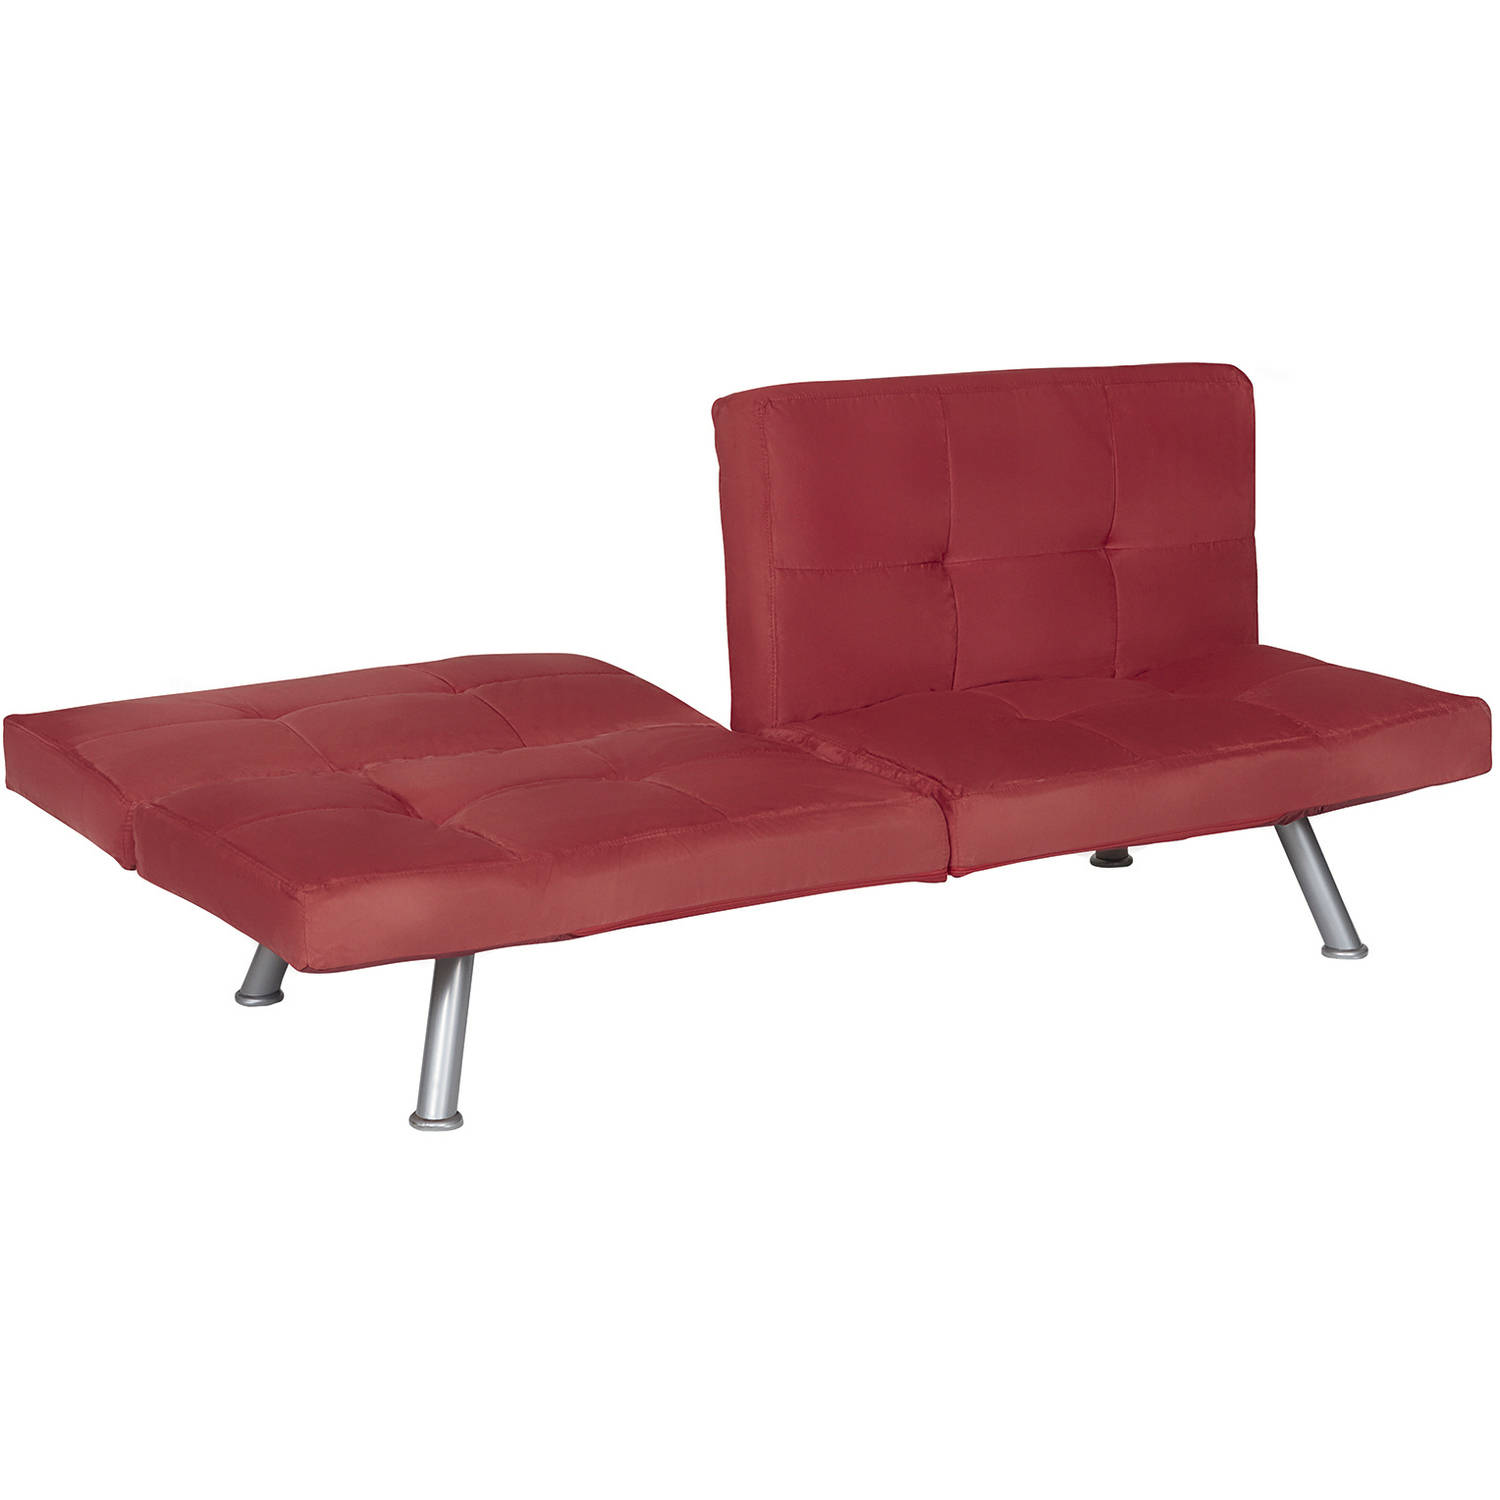 julia cupholder convertible futon sofa bed white custom leather mississauga walmart red  roselawnlutheran